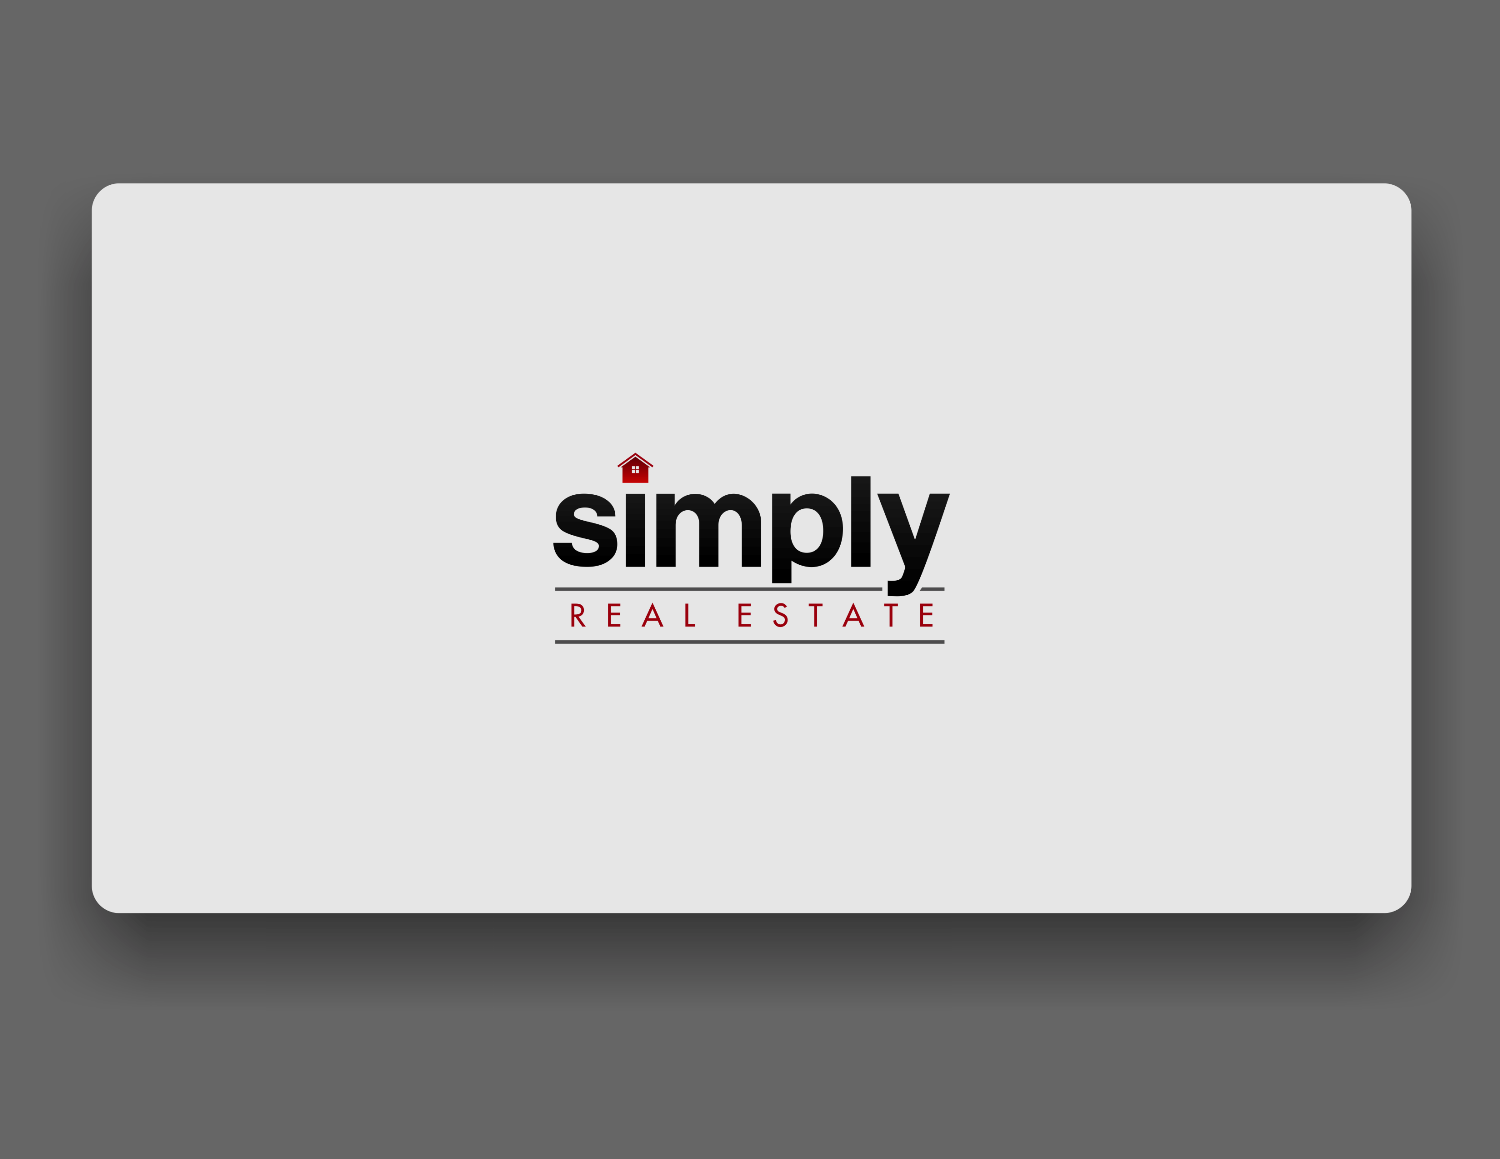 New logo wanted for Simply, Real Estate